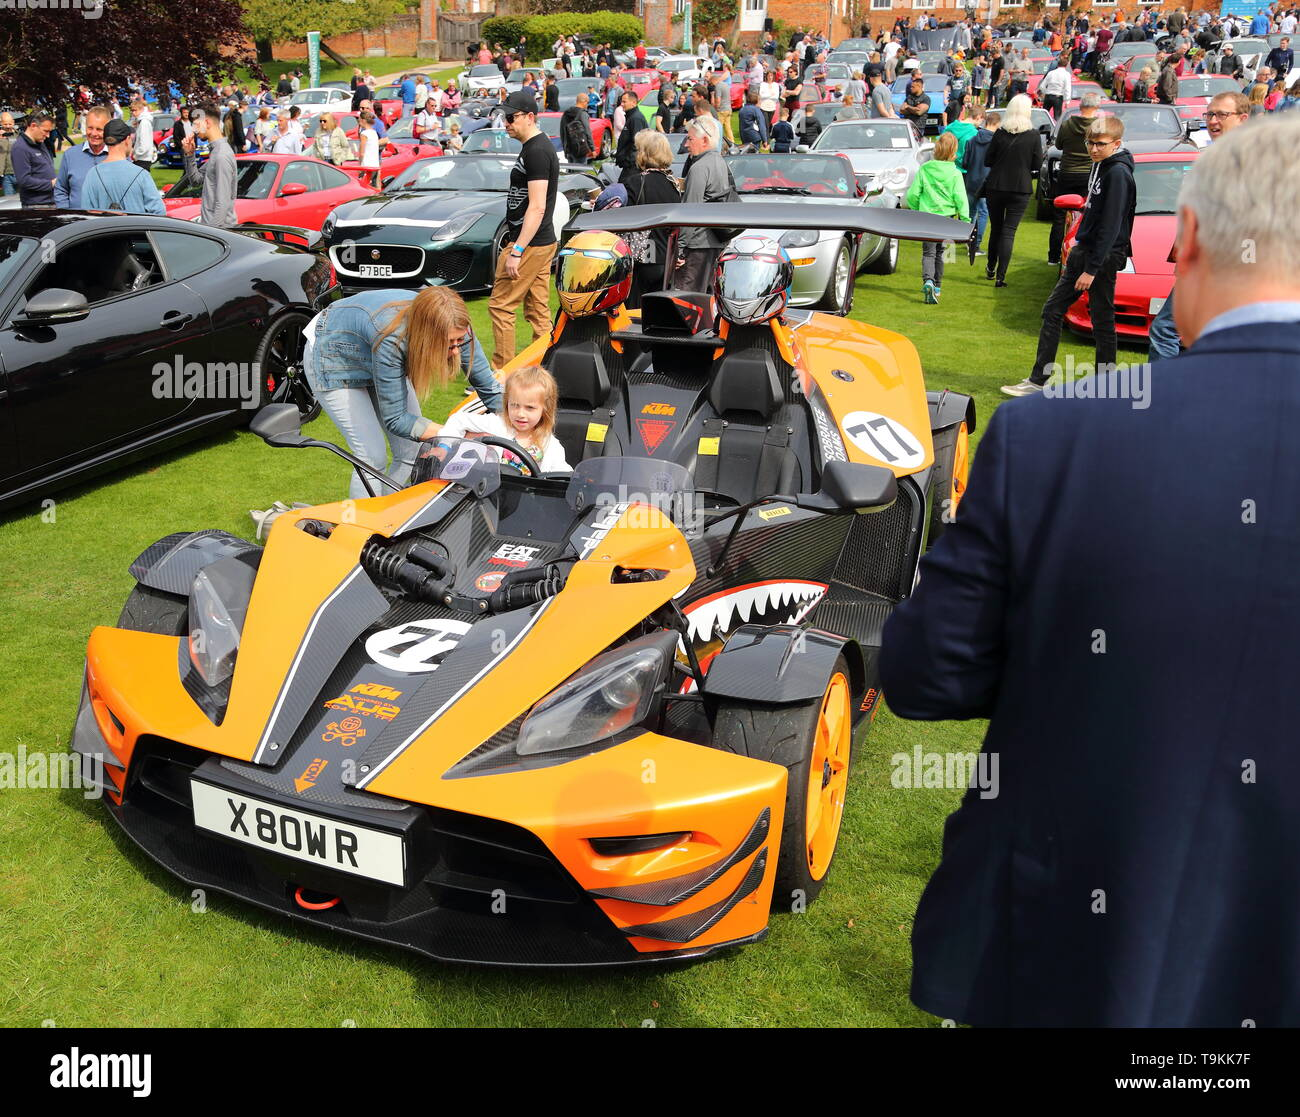 Children enjoyed the opportunity to sit in a rare KTM X-Bow racing car  at Stonor Park for Supercar Sunday, Henley-on-Thames, UK - Stock Image